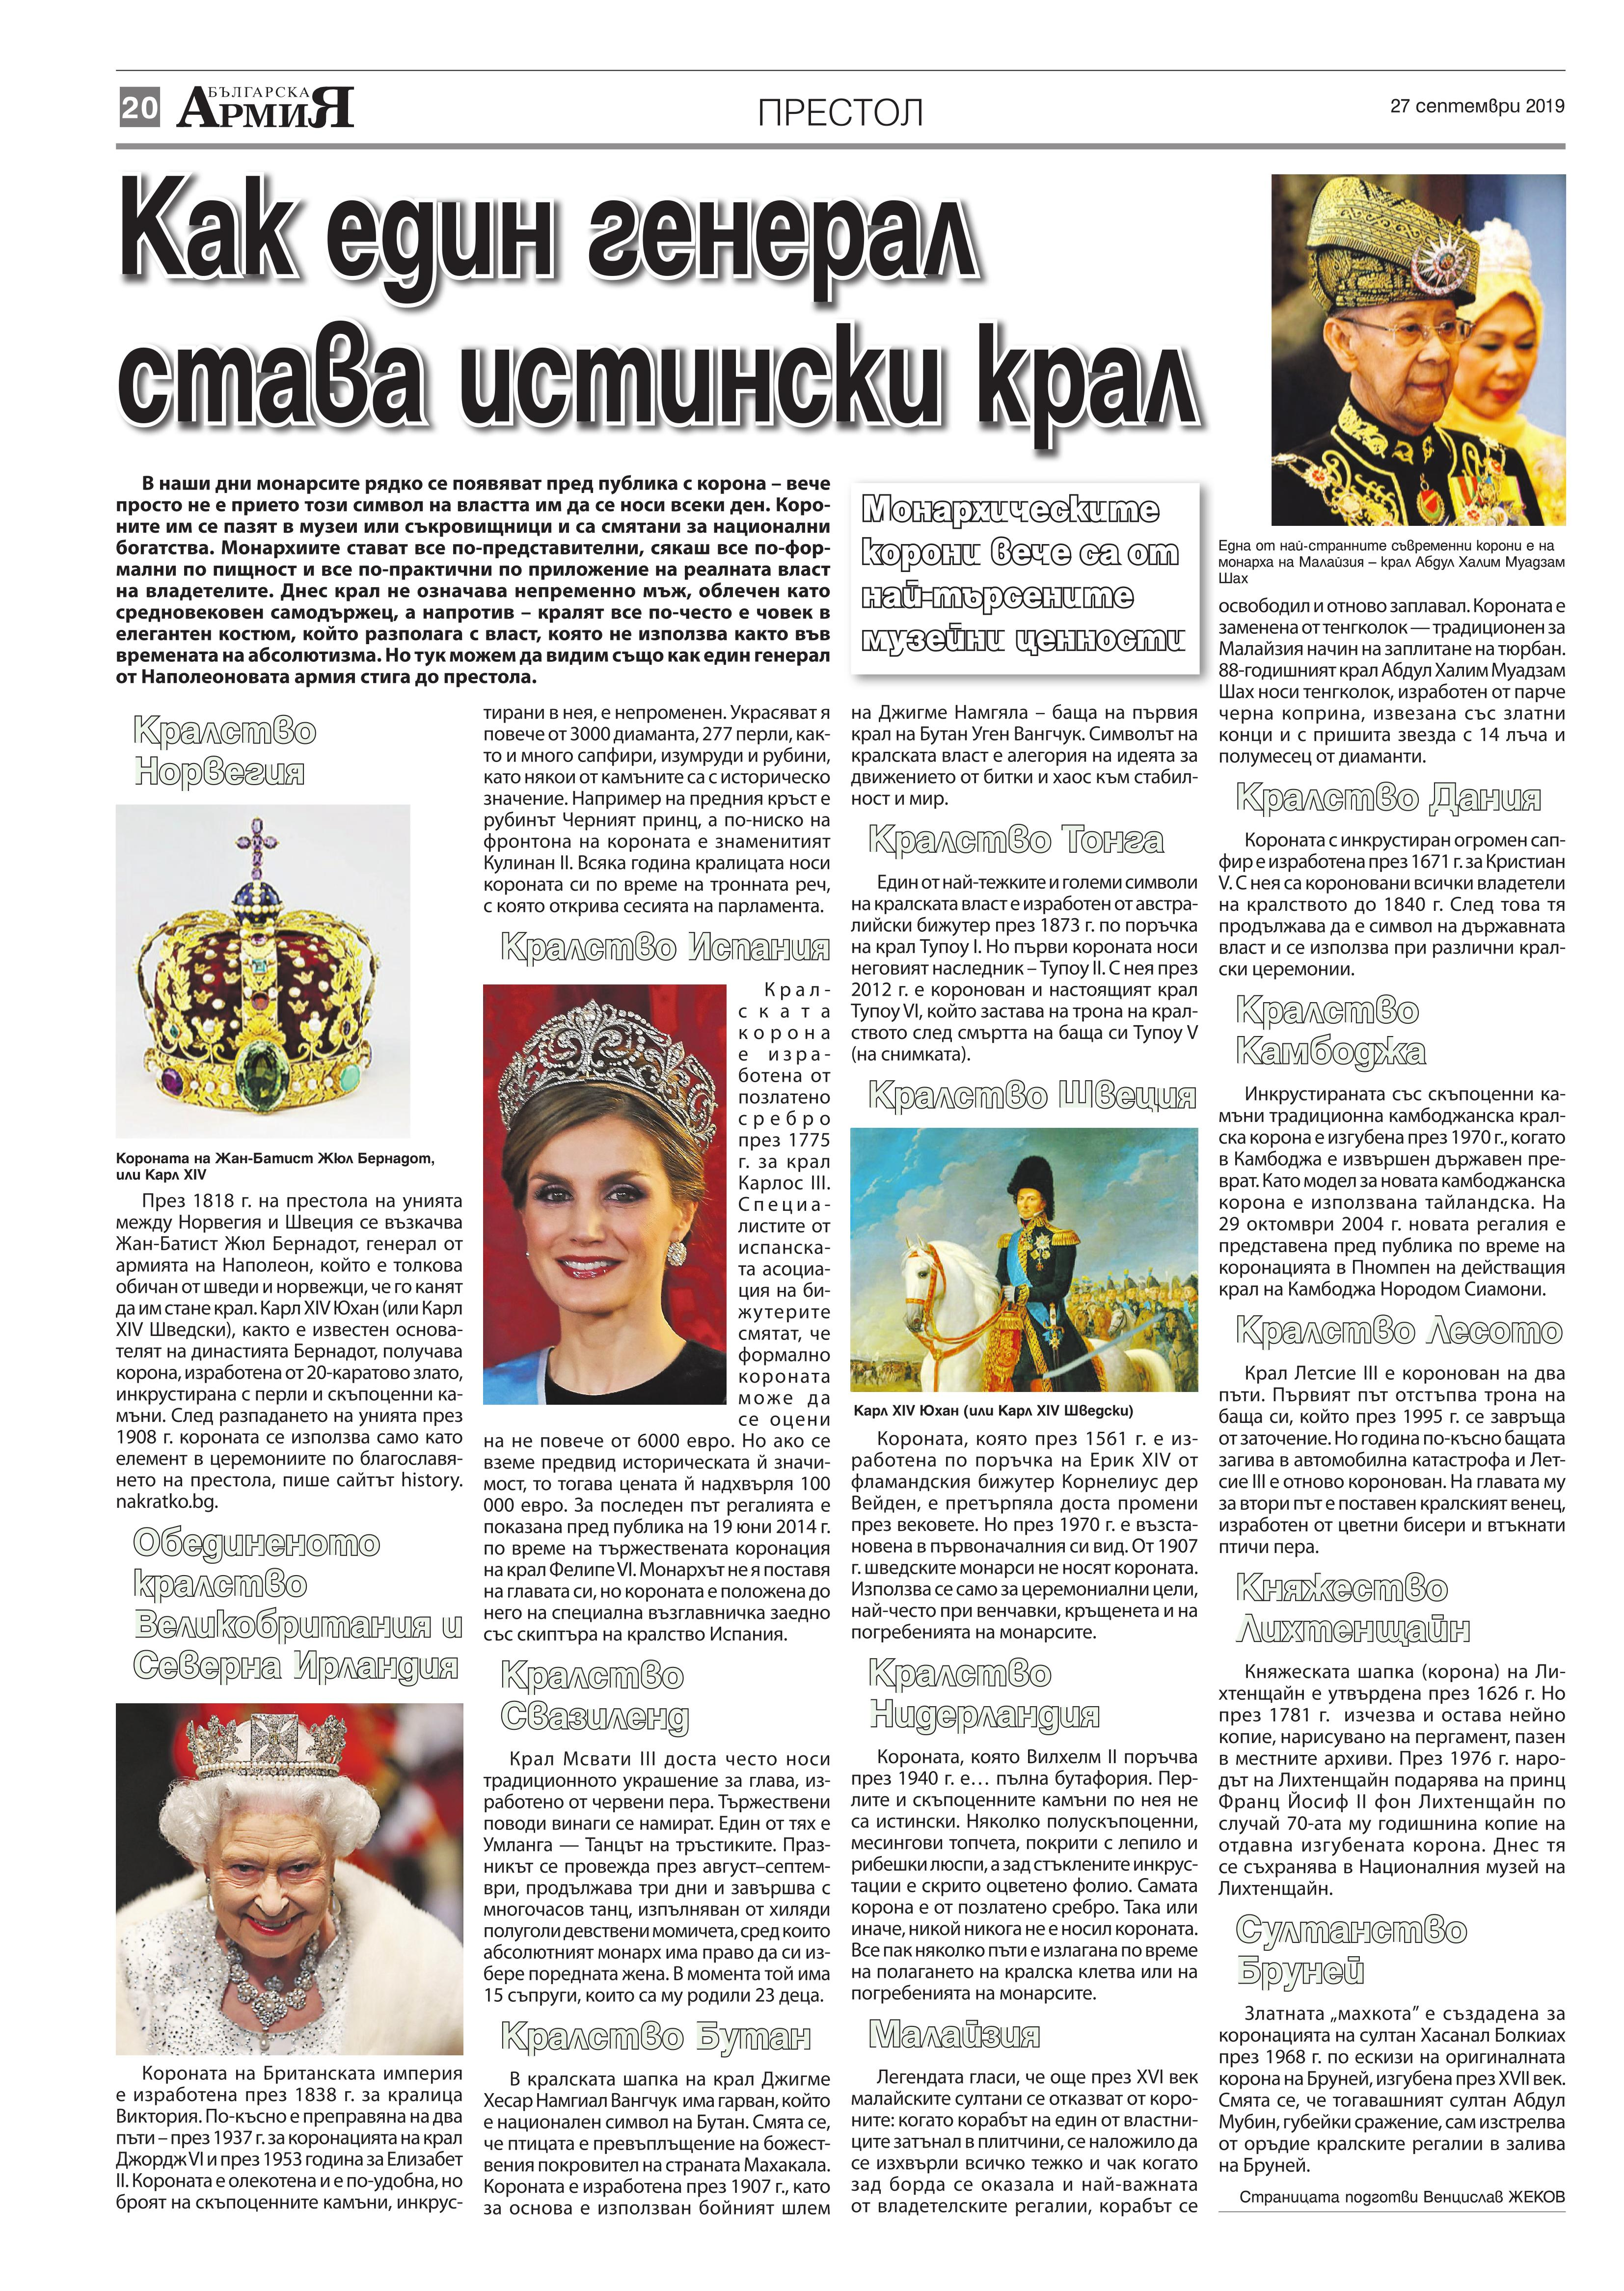 https://www.armymedia.bg/wp-content/uploads/2015/06/20.page1_-110.jpg